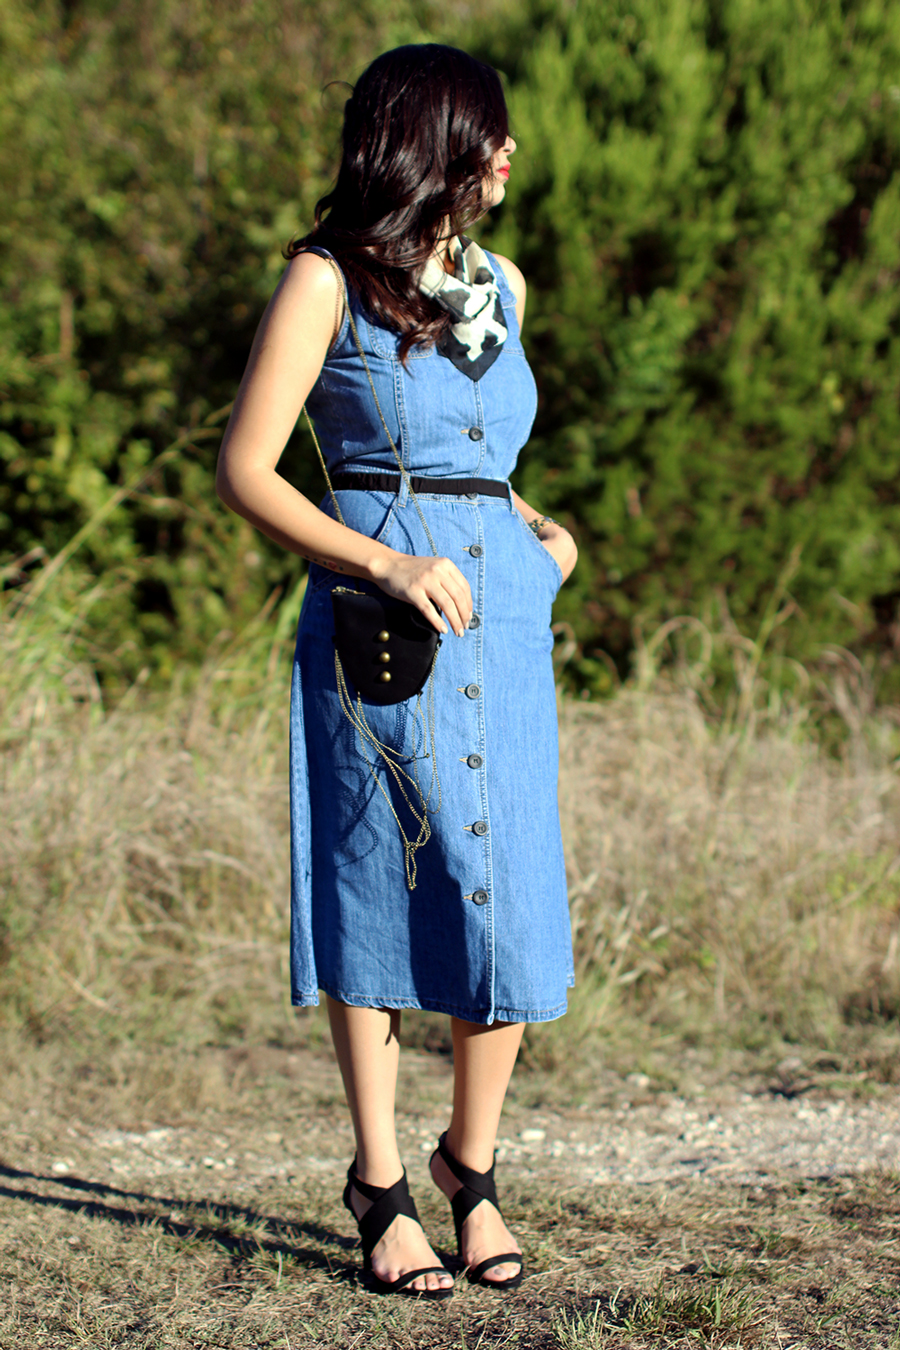 FIXIN-TO-THRILL-PINK-SILVER-FASHION-DENIM-DRESS-STRAPPY-HEELS-TREND-FALL-OCTOBER-ATX-AUSTIN-STYLE-BLOG-FW15-TRENDY-CHIC-GLAM-TEXAS